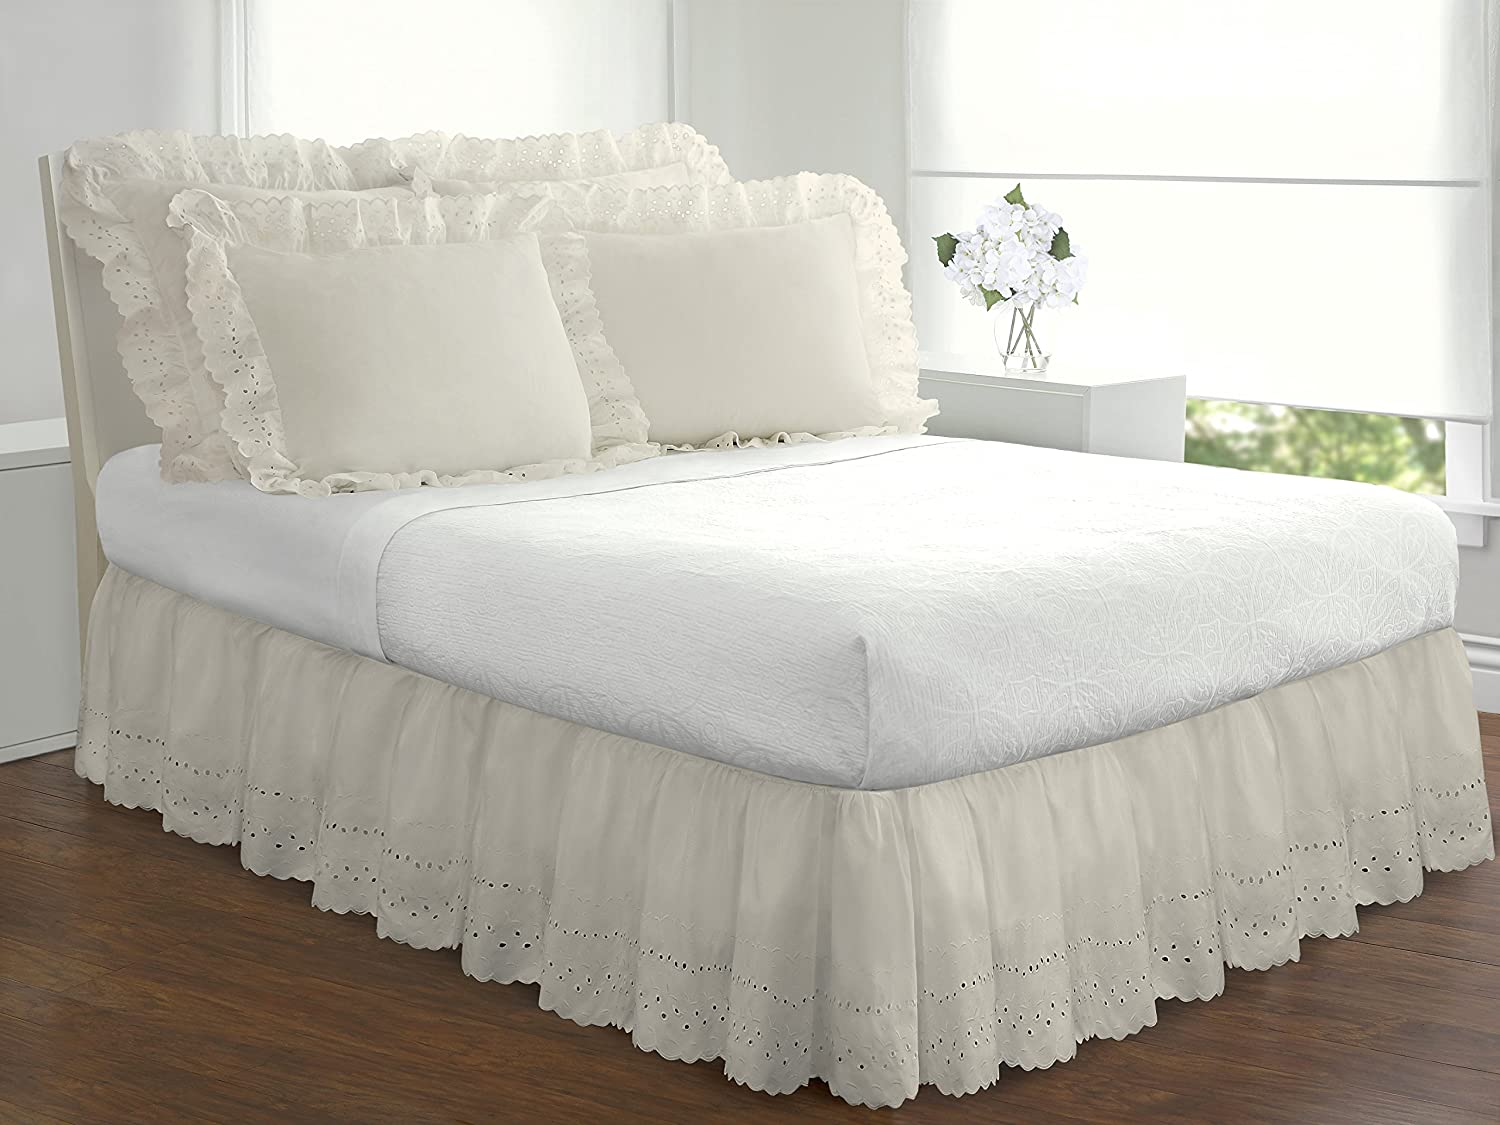 Eyelet Ruffled Bedskirt – Ruffled Bedding with Gathered Styling